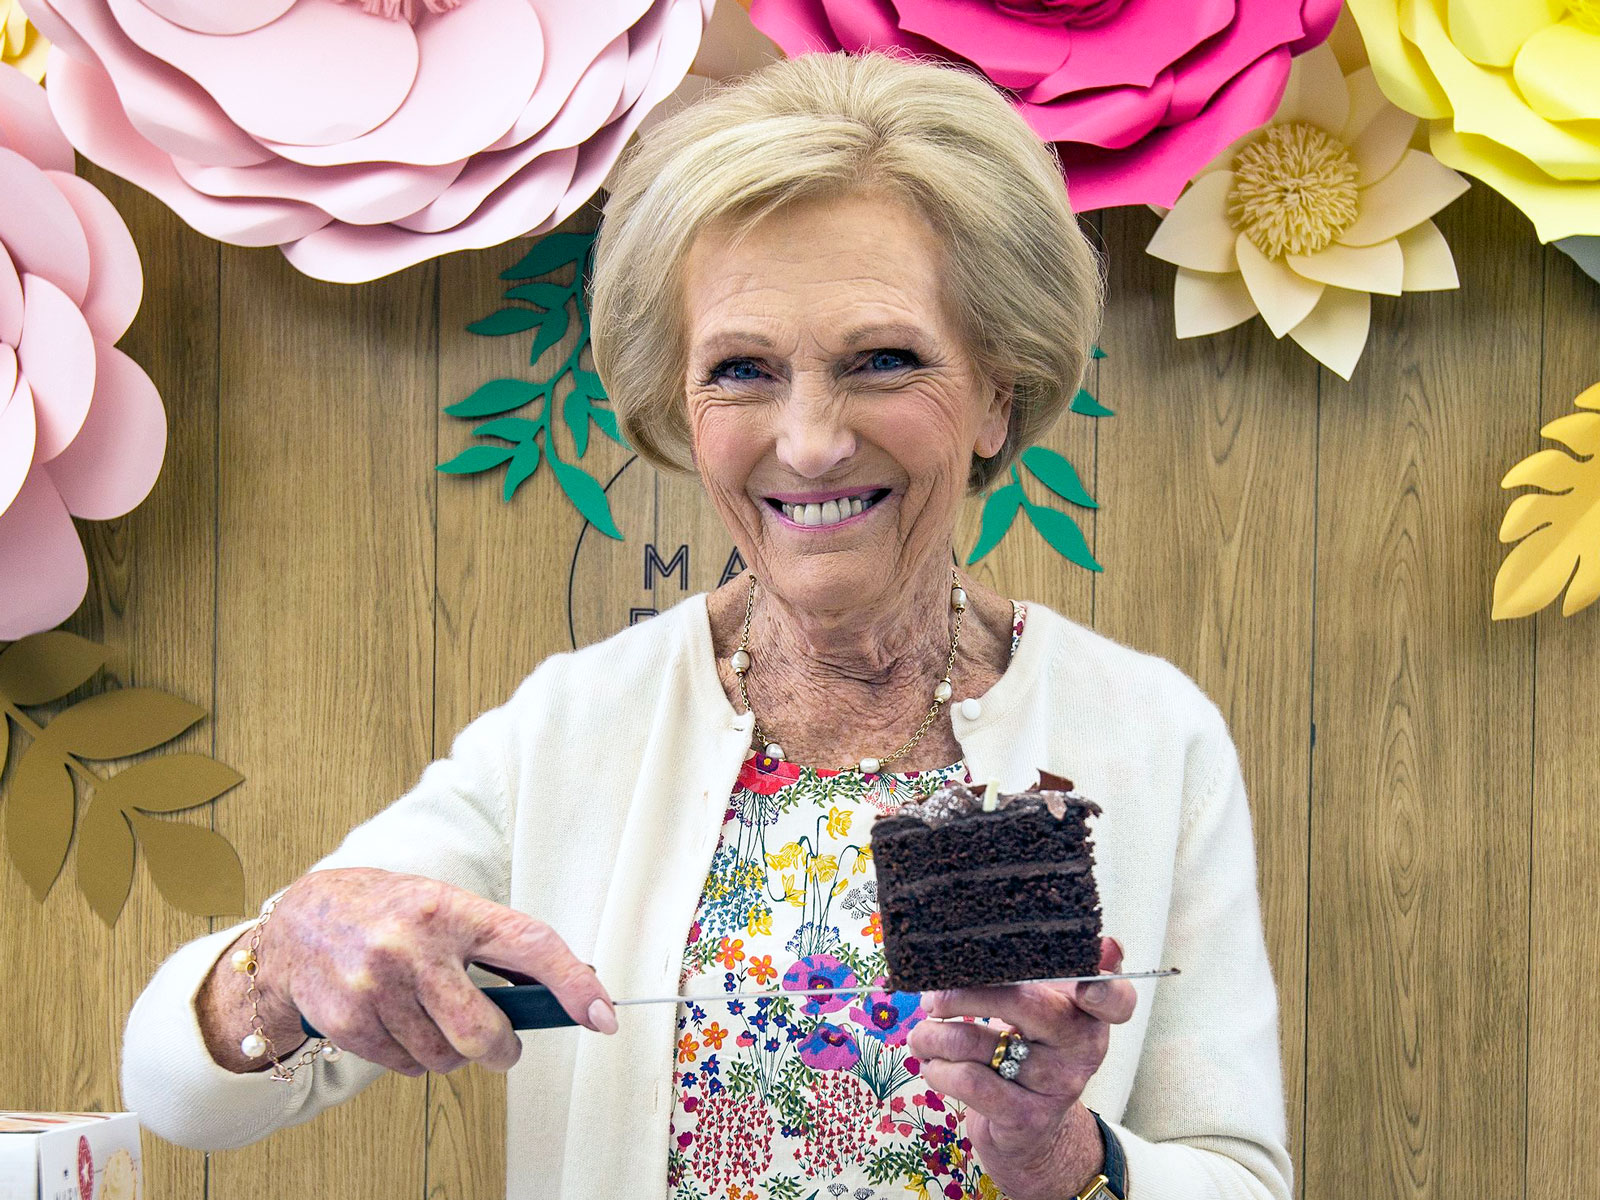 Even Mary Berry Takes Shortcuts on Sponge Cake